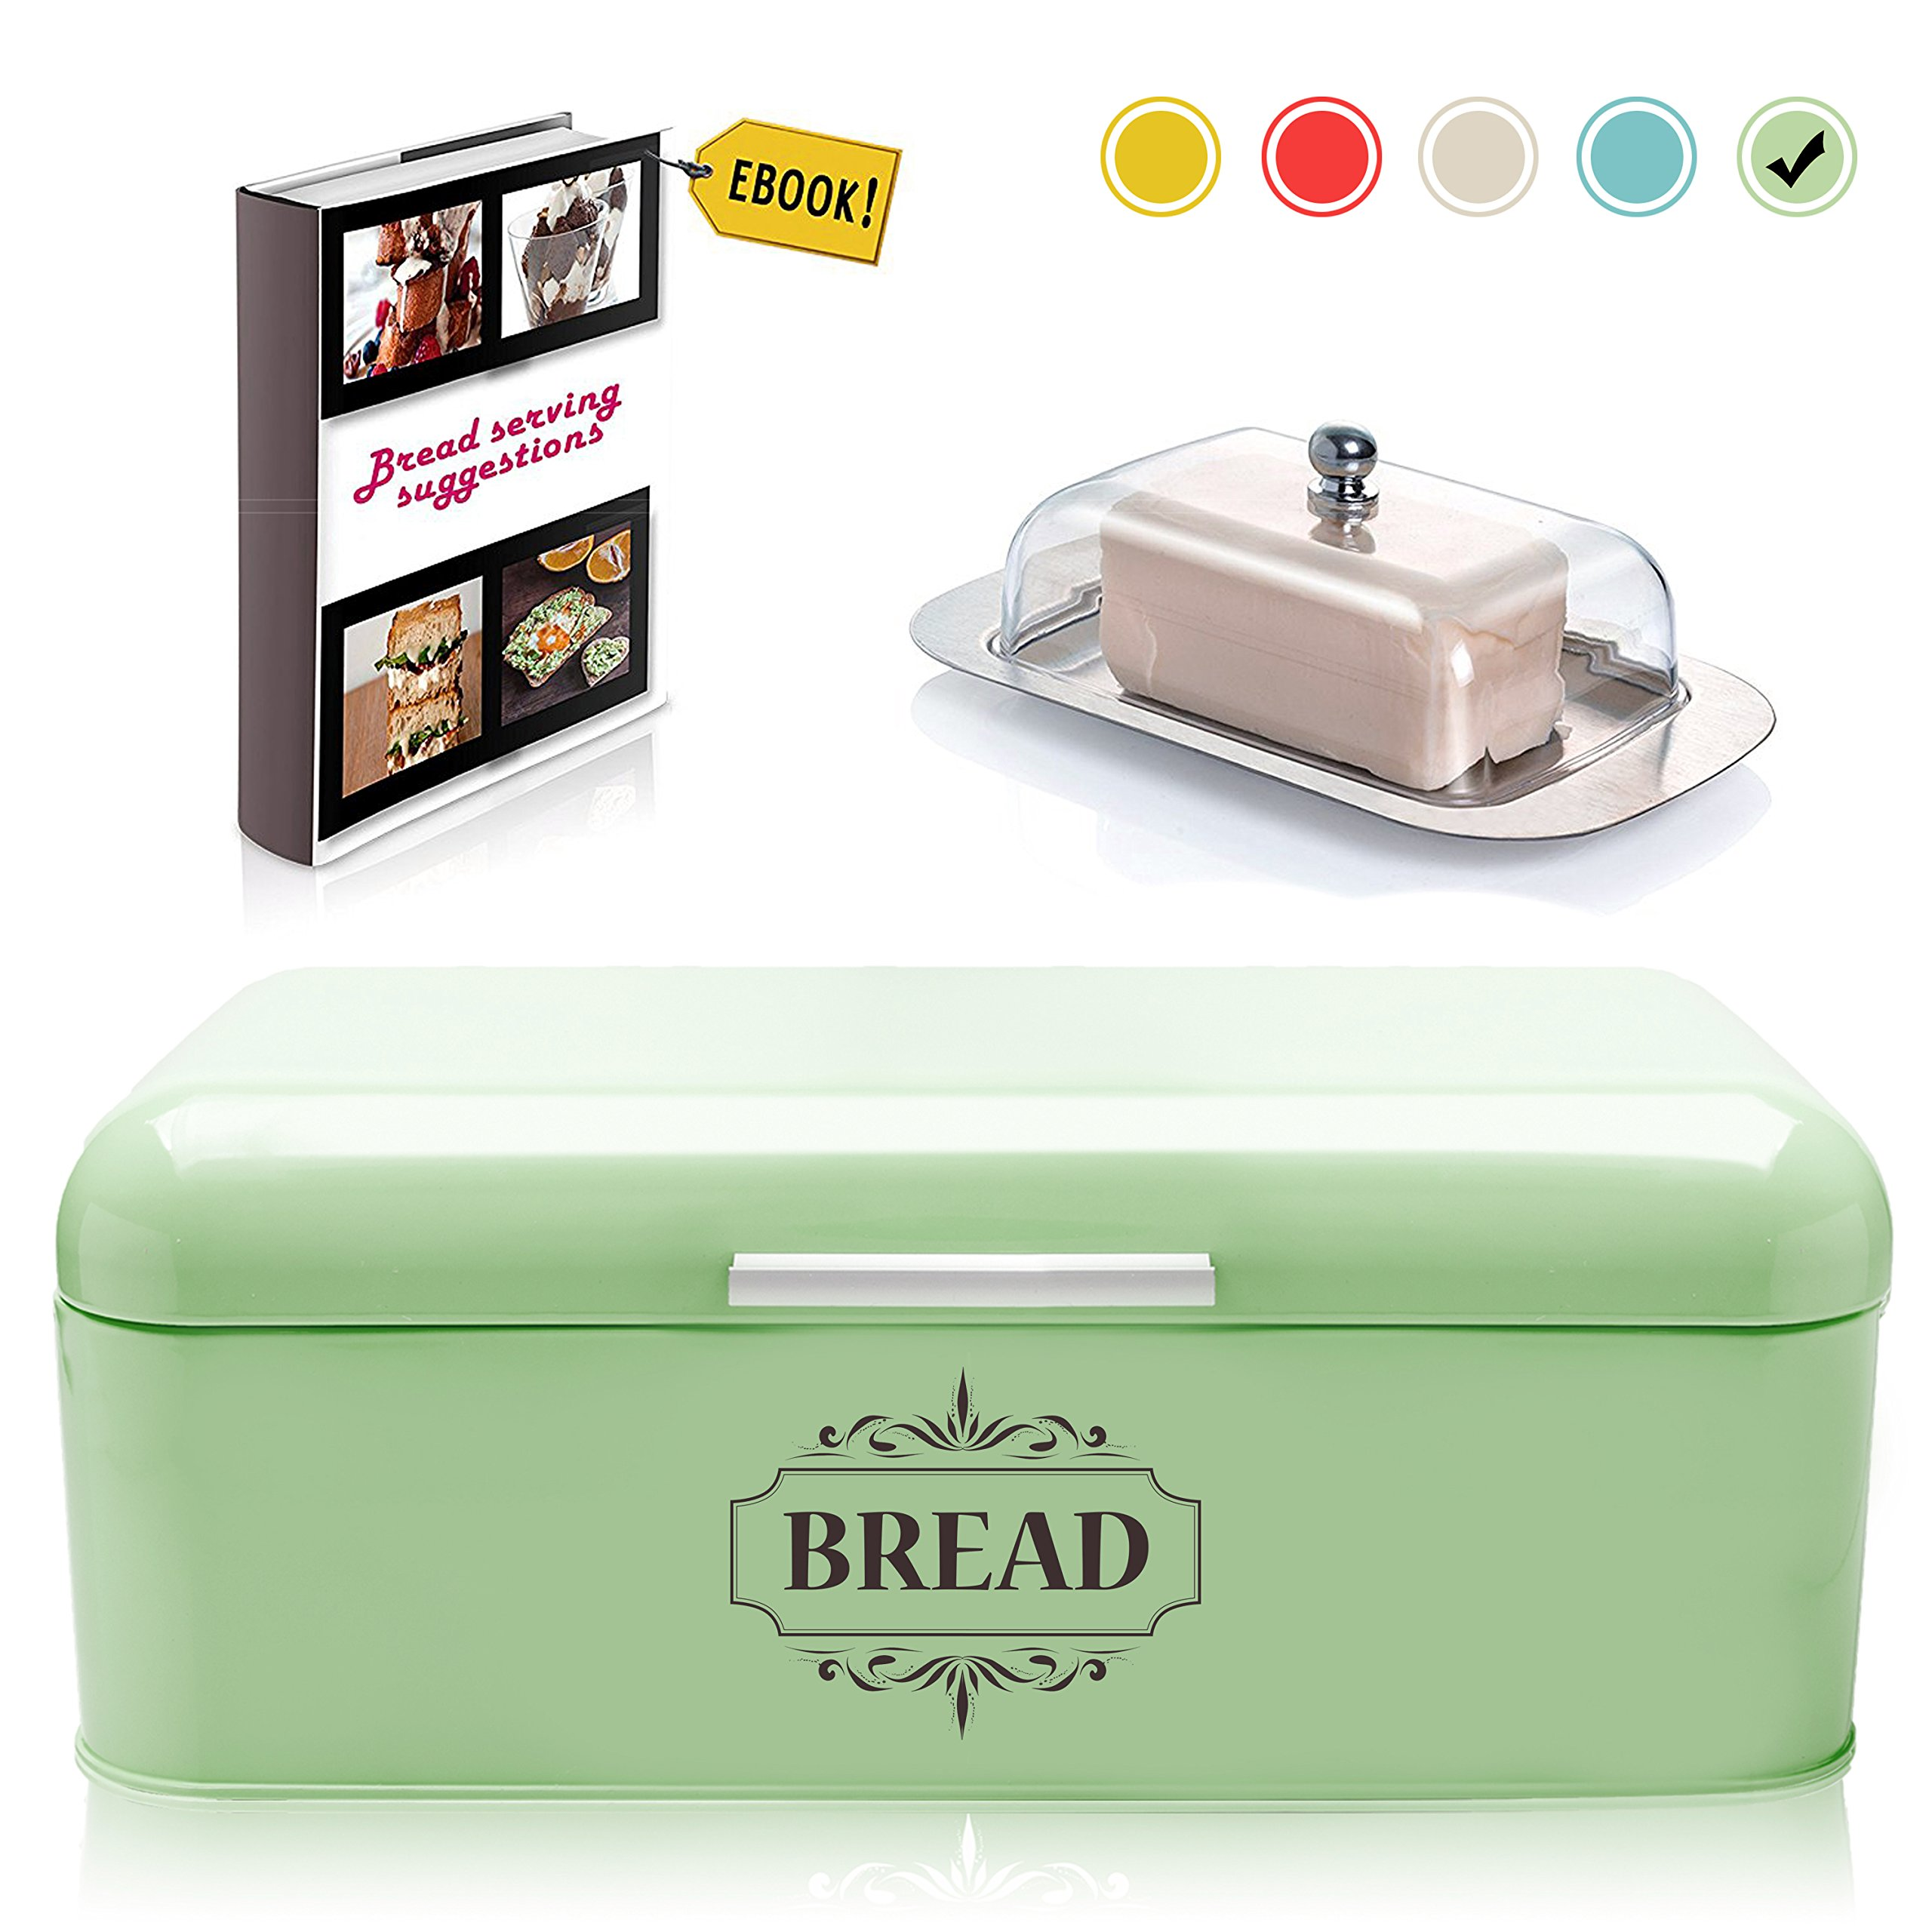 Vintage Bread Box For Kitchen Stainless Steel Metal in Retro Green + FREE Butter Dish + FREE Bread Serving Suggestions eBook 16.5'' x 9'' x 6.5'' Large Bread Bin storage by All-Green Products